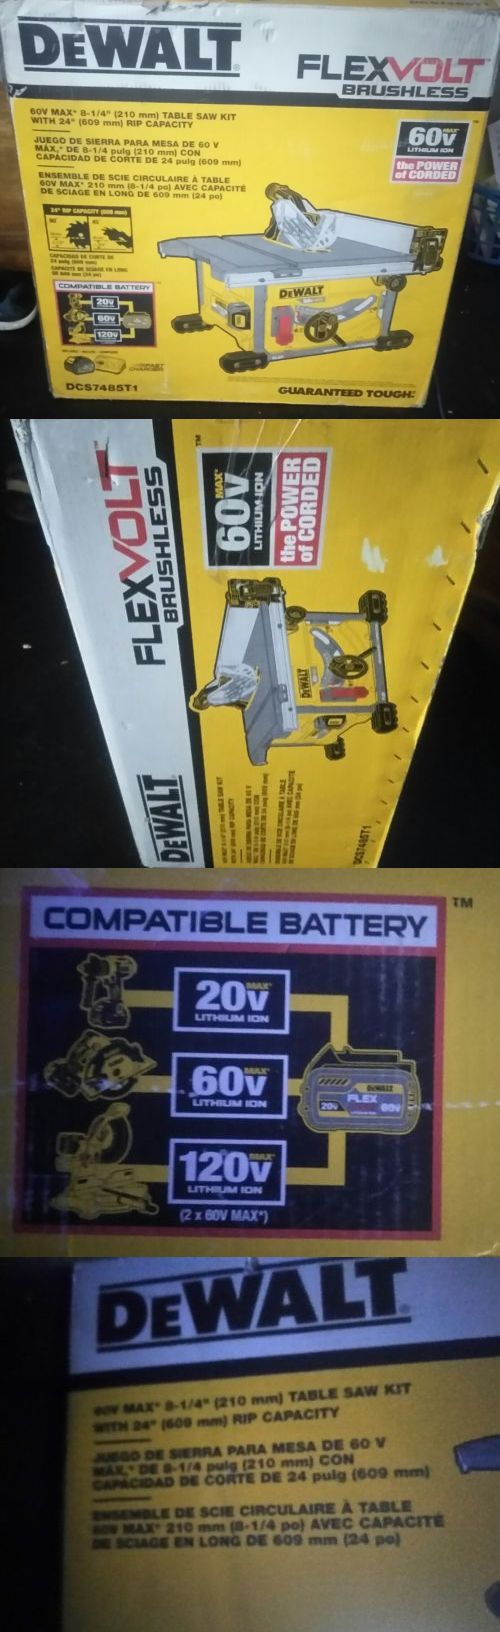 Other Power Saws and Blades 122838: Dewalt Dcs7485t1 60V Max Brushless Table Saw W Battery And Charger -> BUY IT NOW ONLY: $444.99 on eBay!